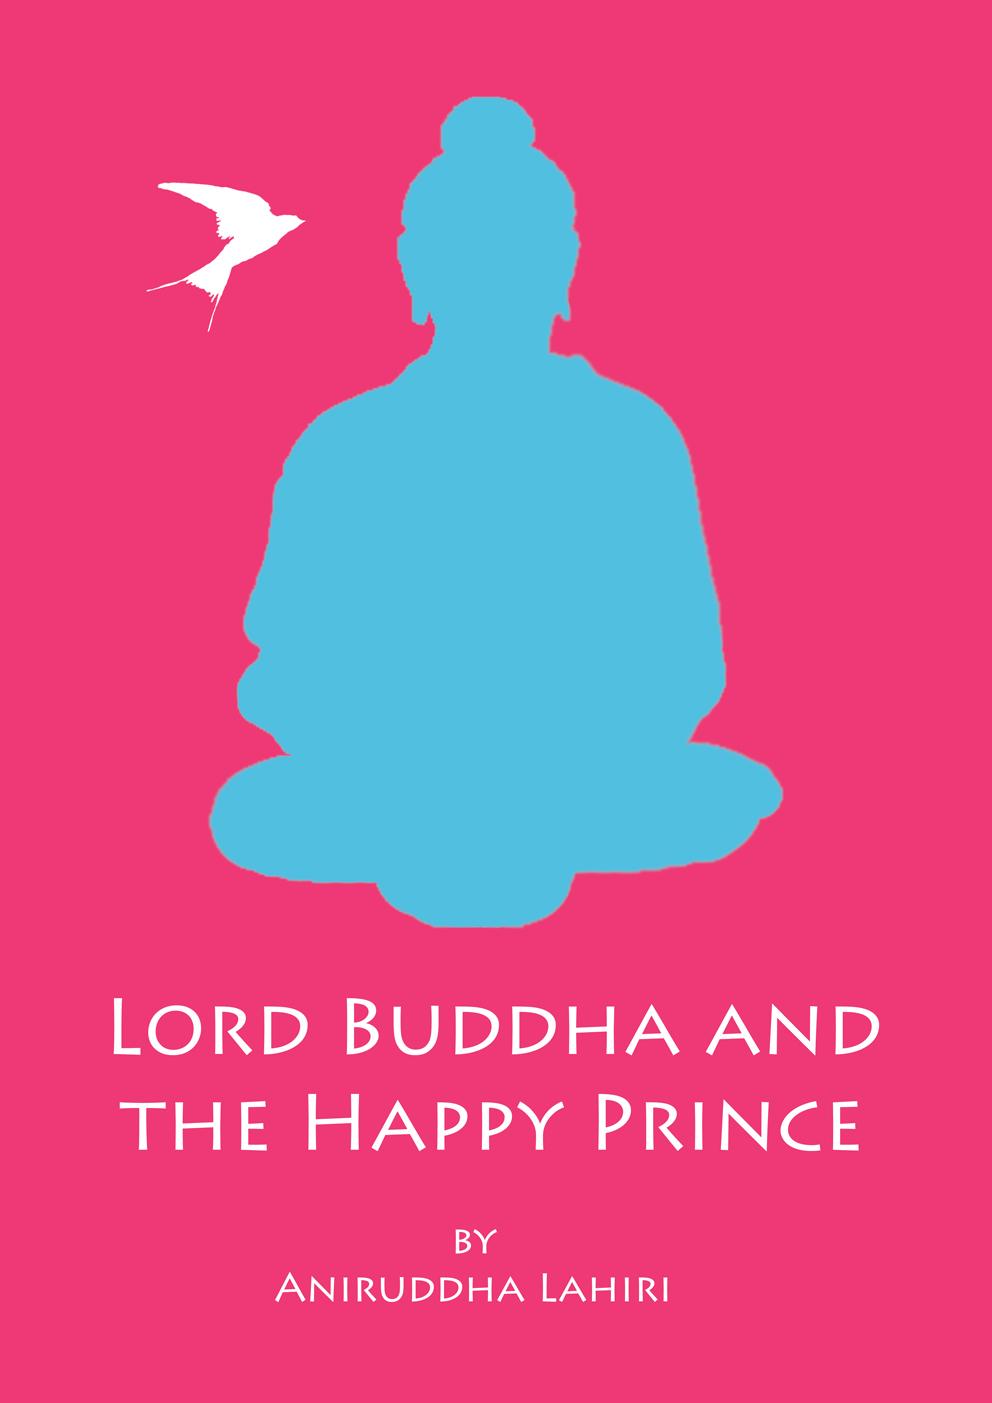 Lord Buddha and the Happy Prince